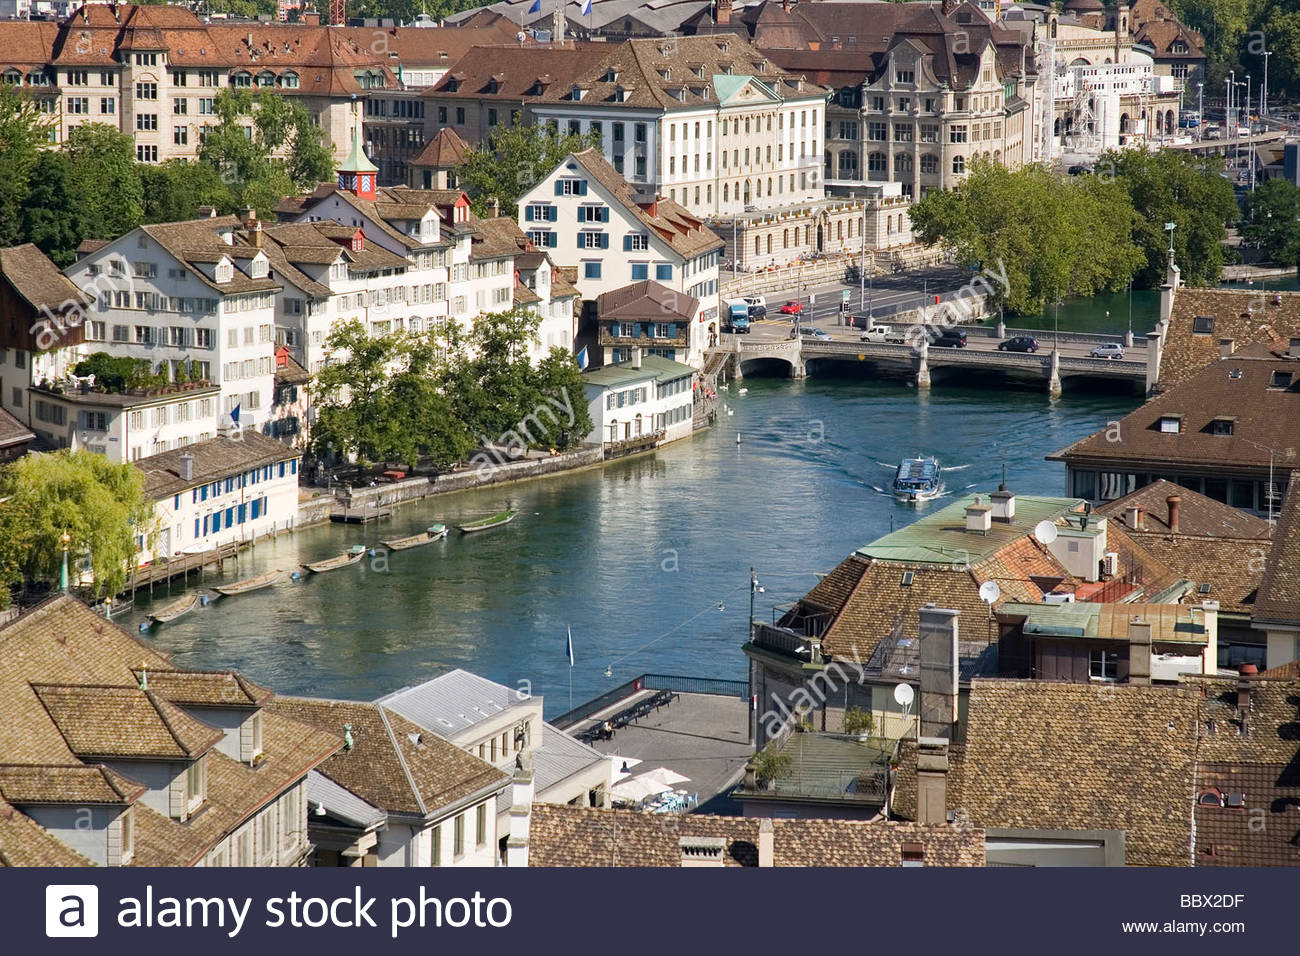 europe, switzerland, zurich, old town, limmat river, fluvial boat - Stock Image